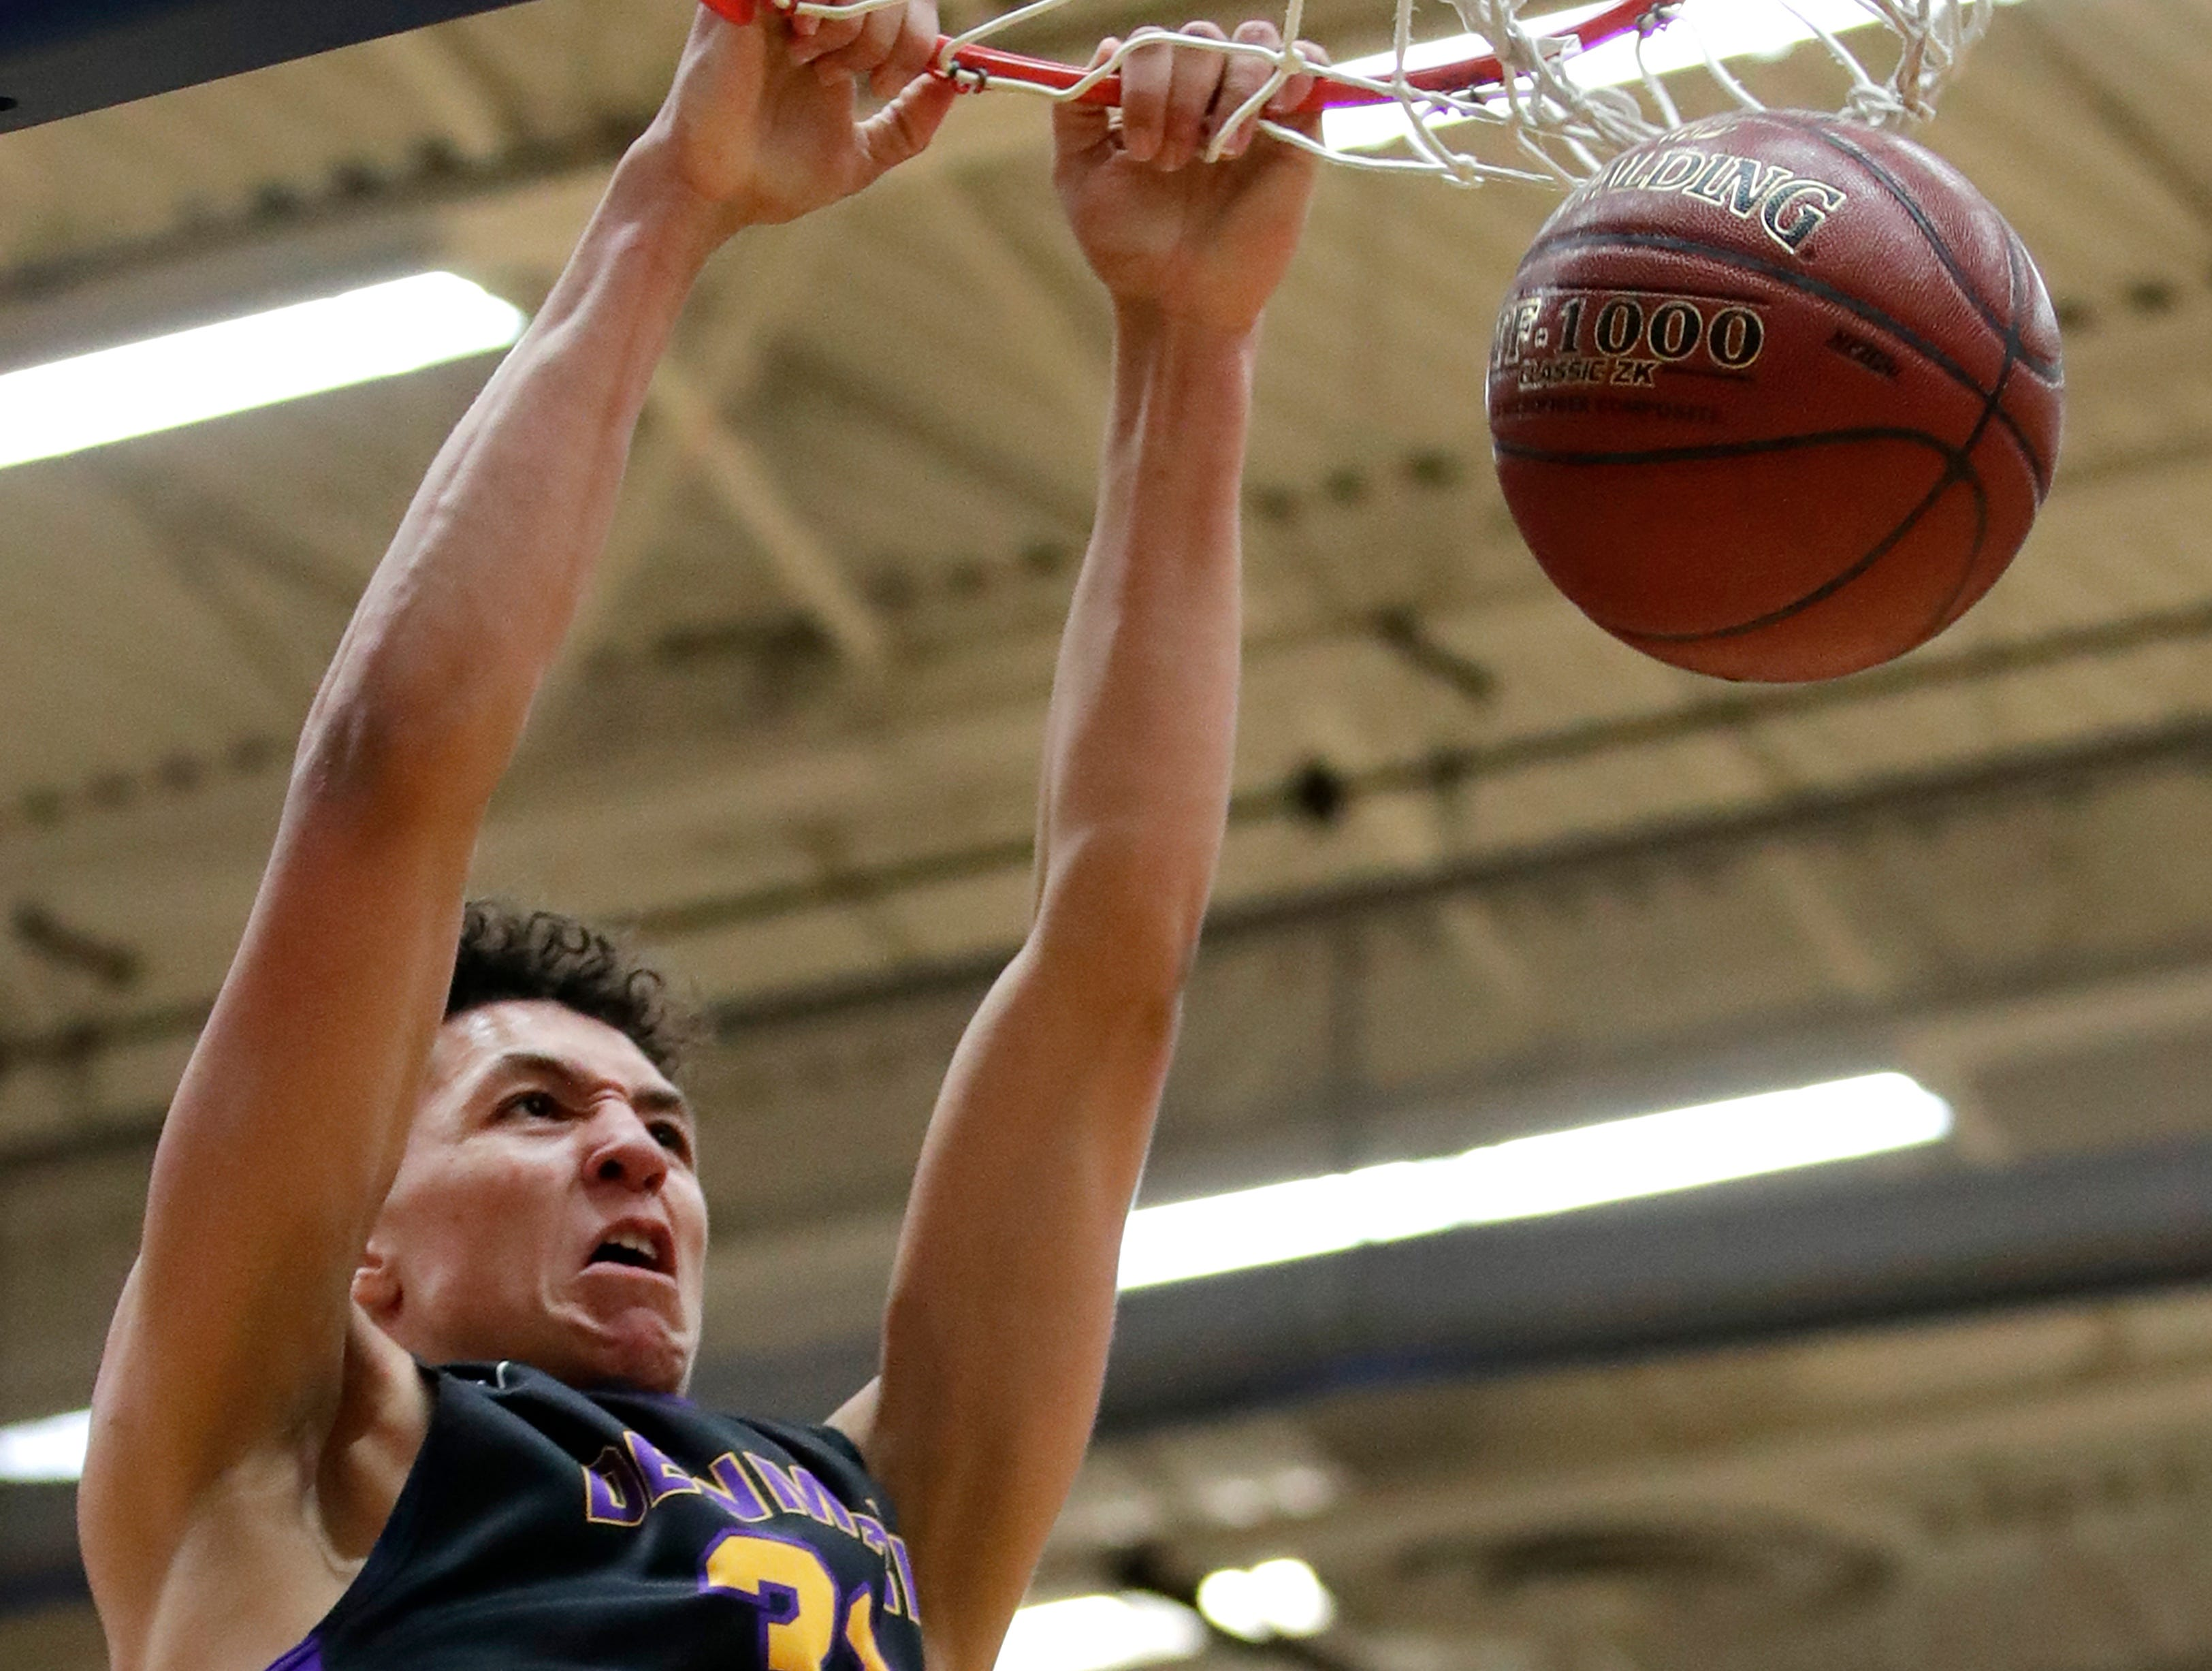 Denmark High SchoolÕs Patrick Suemnick dunks the ball on Freedom High School during the D3 sectional final Saturday, March 9, 2019, at Appleton North High School in Appleton, Wis.Danny Damiani/USA TODAY NETWORK-Wisconsin